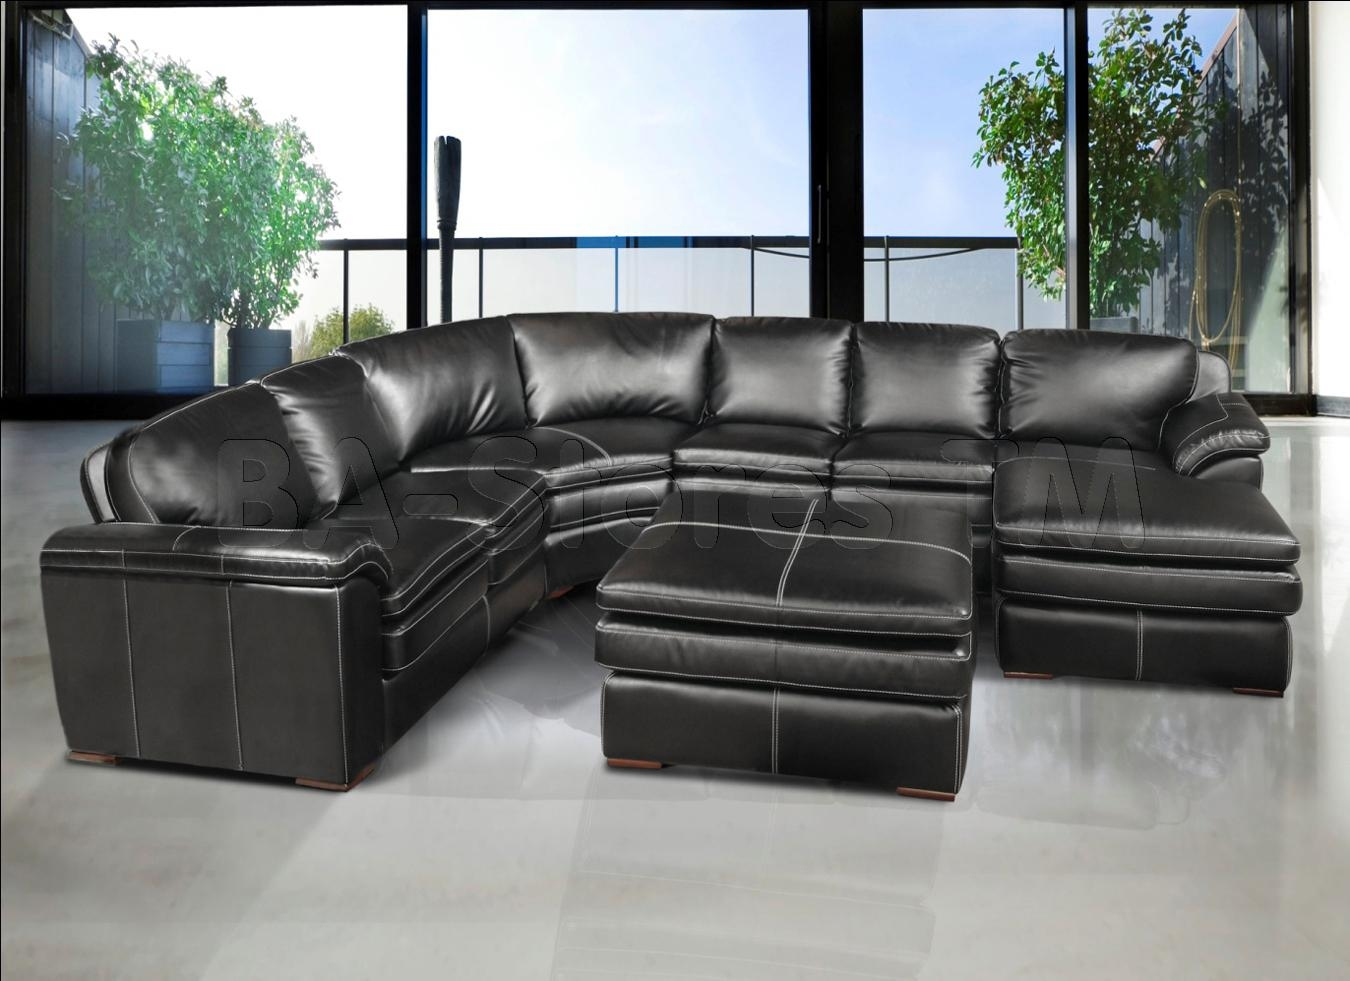 Grey Leather Sectional Sofa – Sofas With Regard To Gray Leather Sectional Sofas (Image 13 of 21)